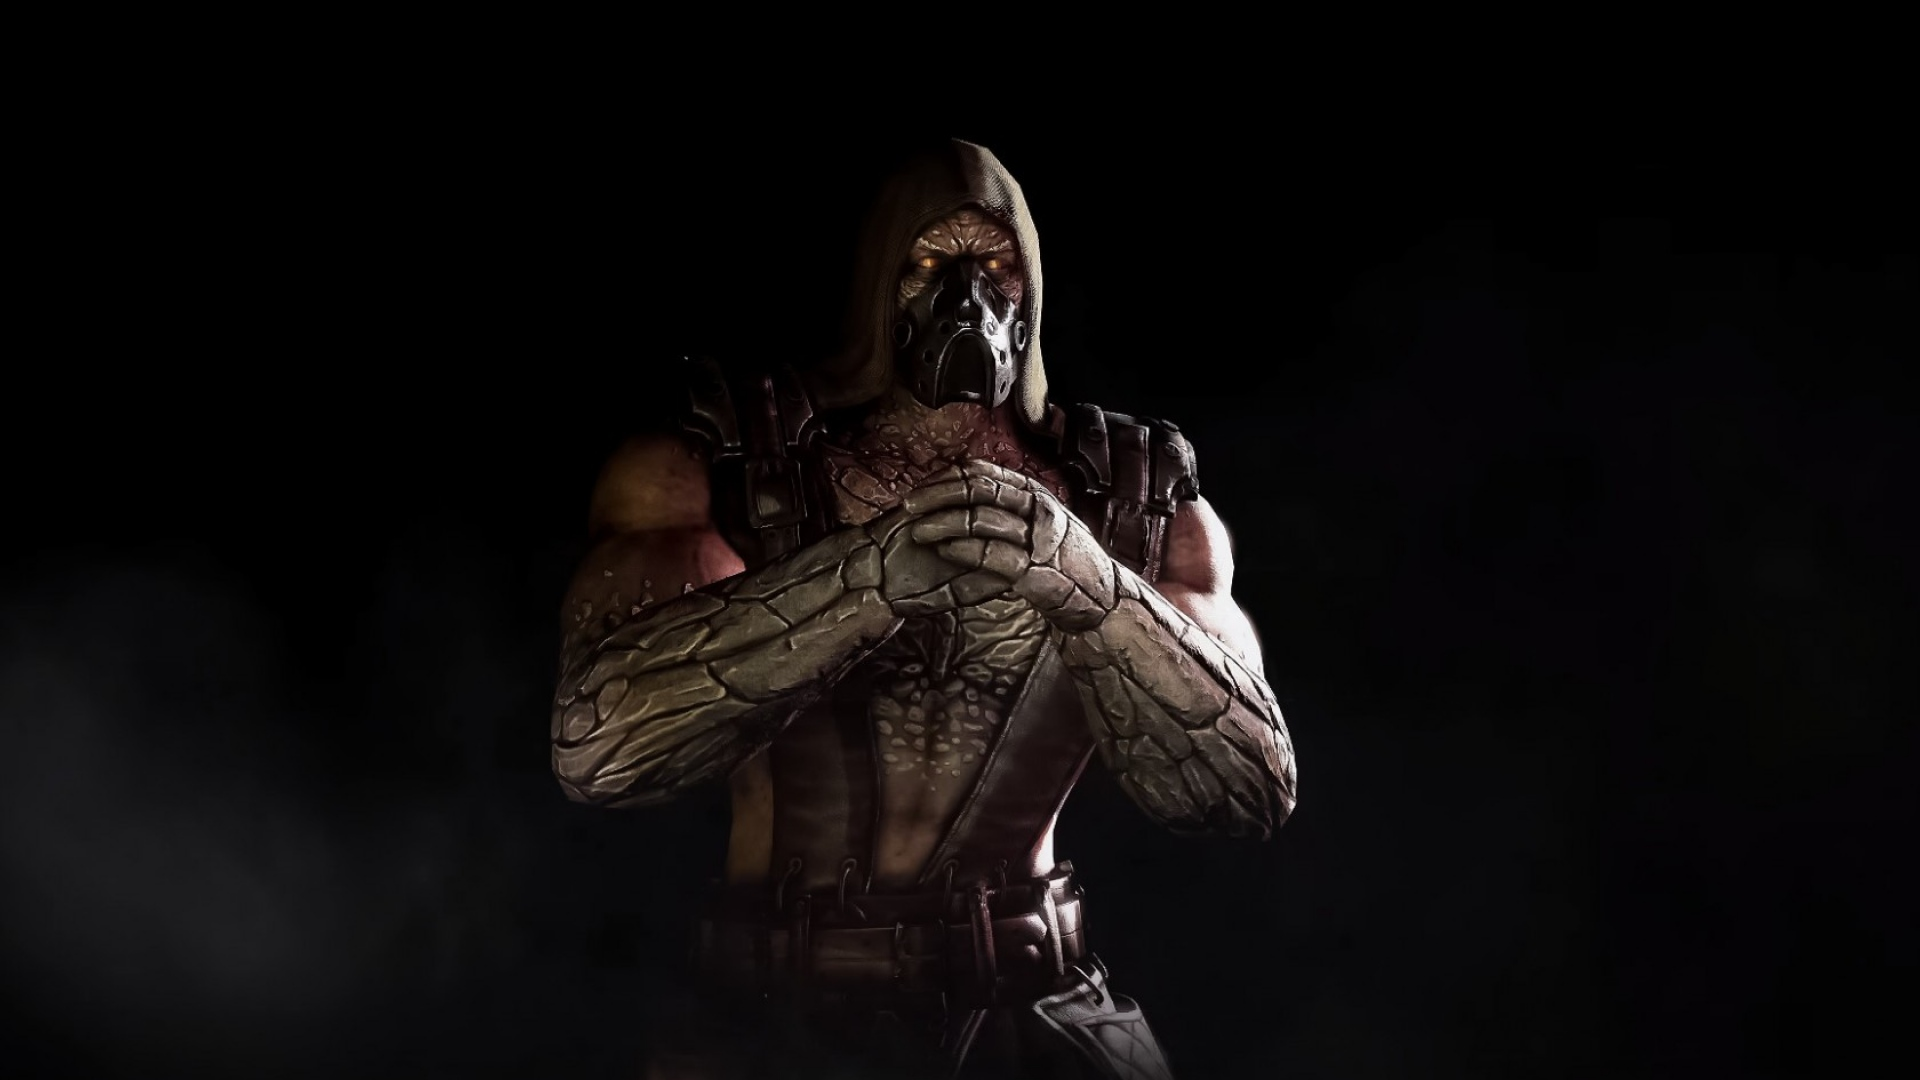 Download Tremor Mortal Kombat X HD Wallpaper Search more Games high 1920x1080